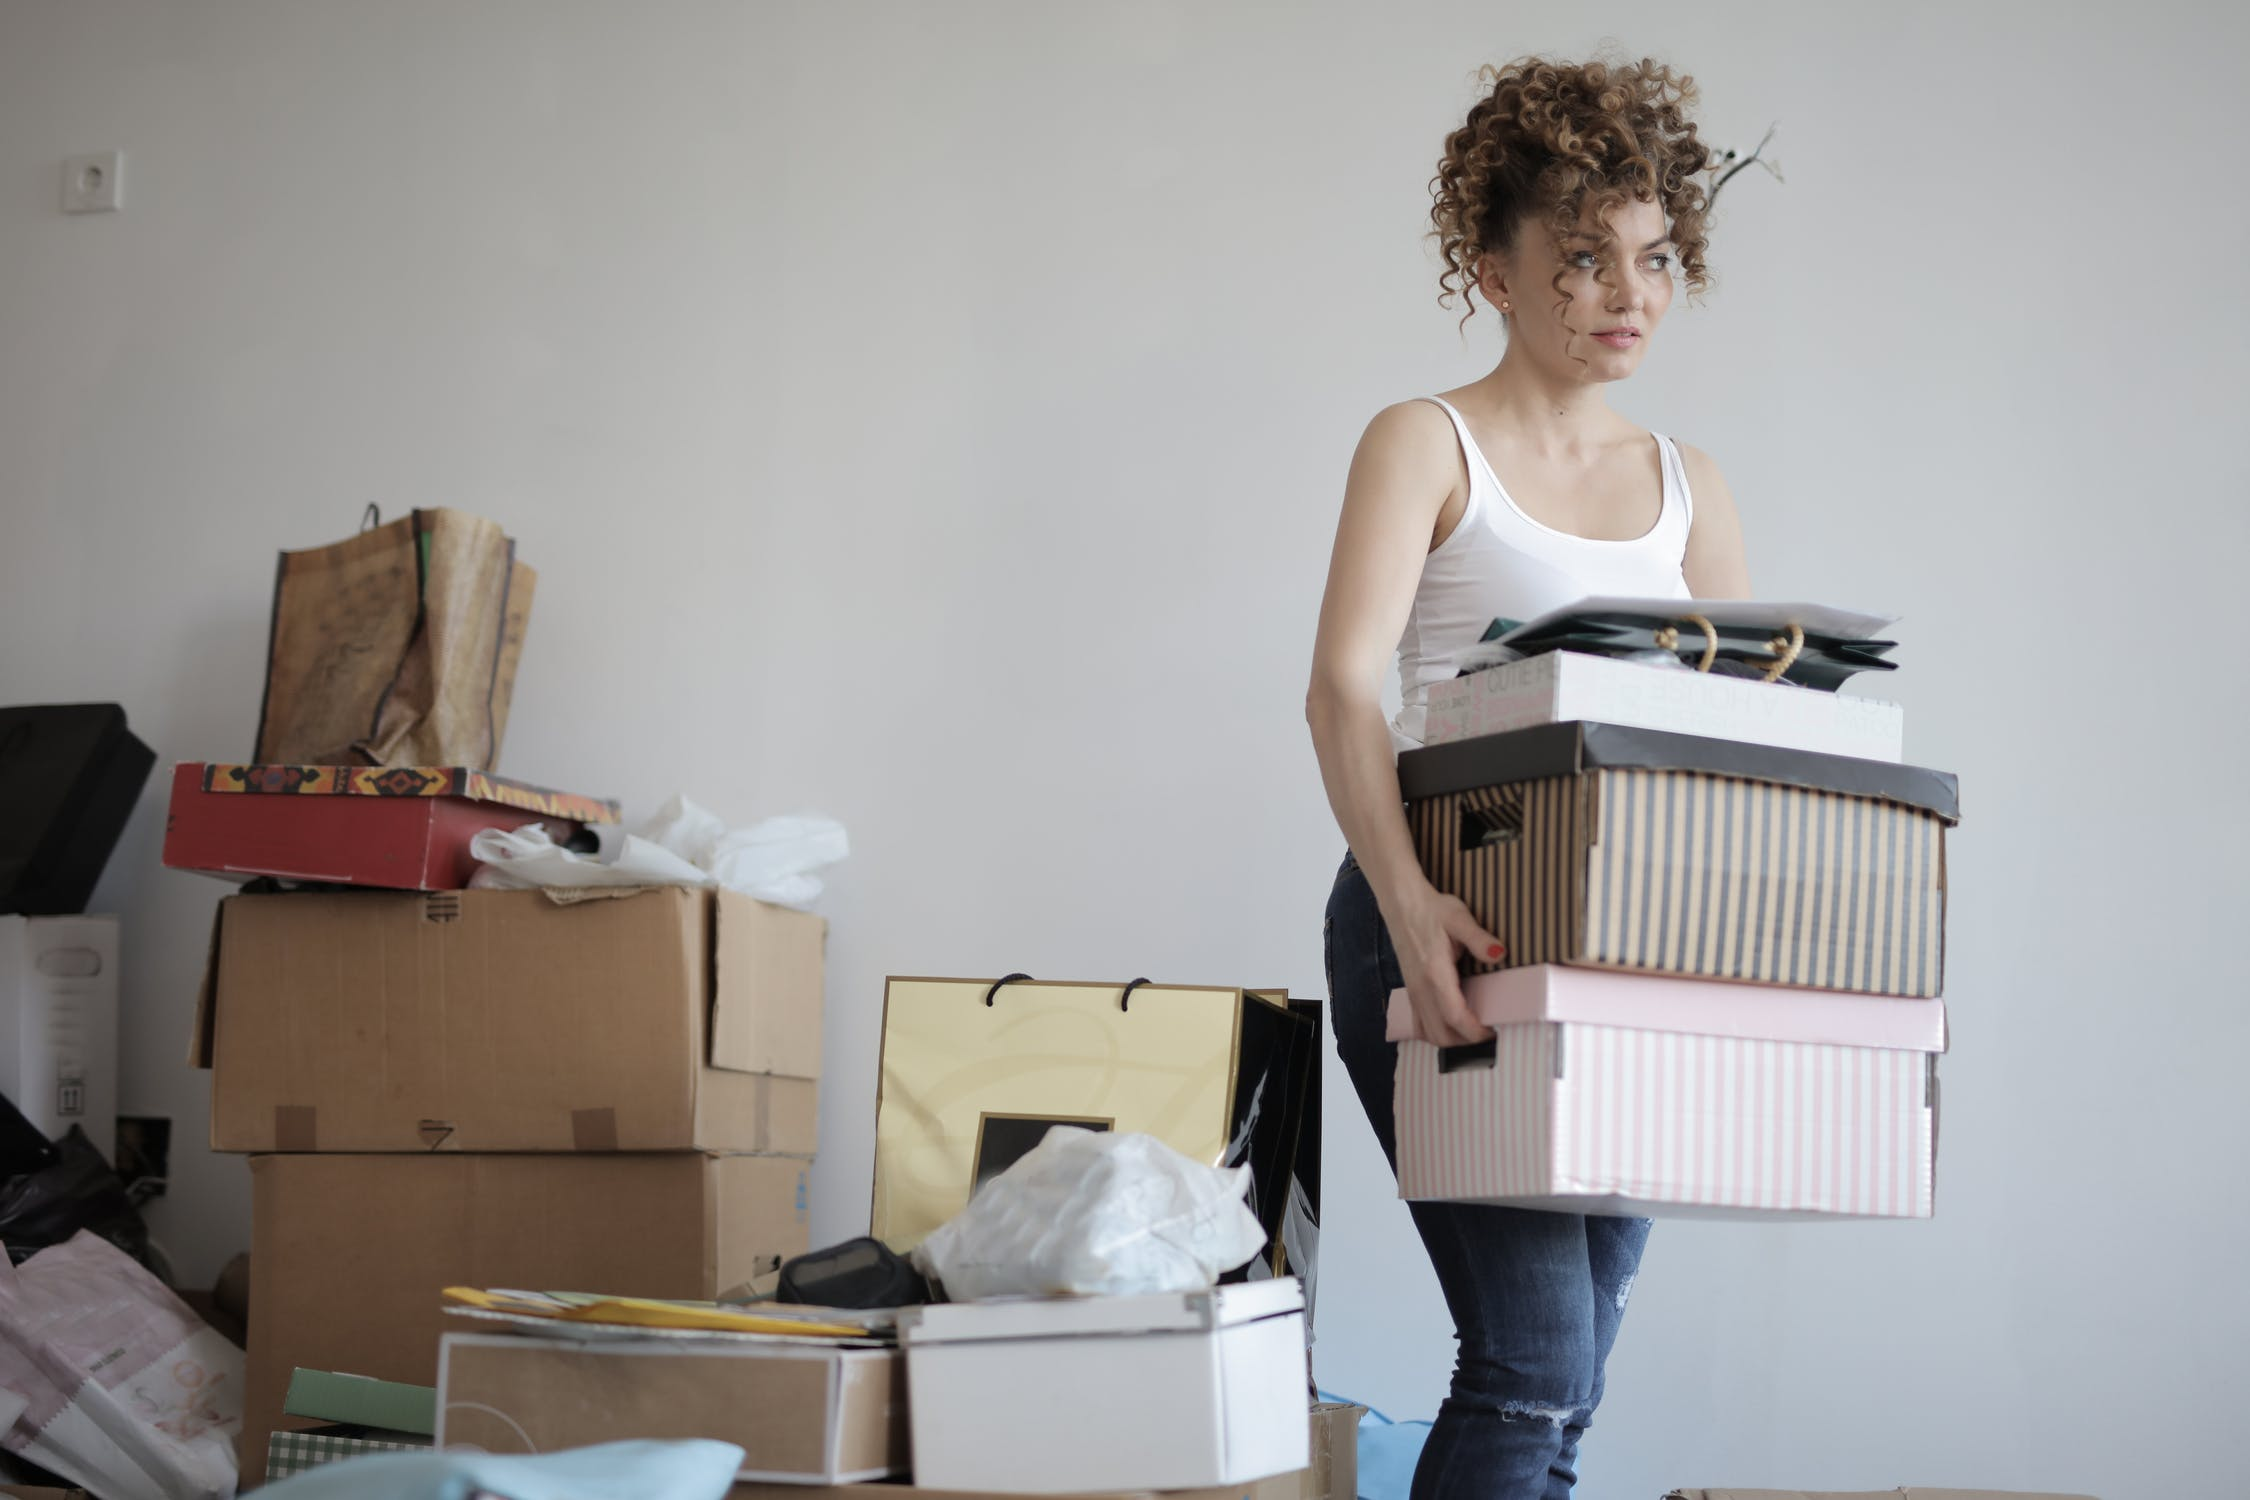 Woman holding boxes with a pile of things behind her